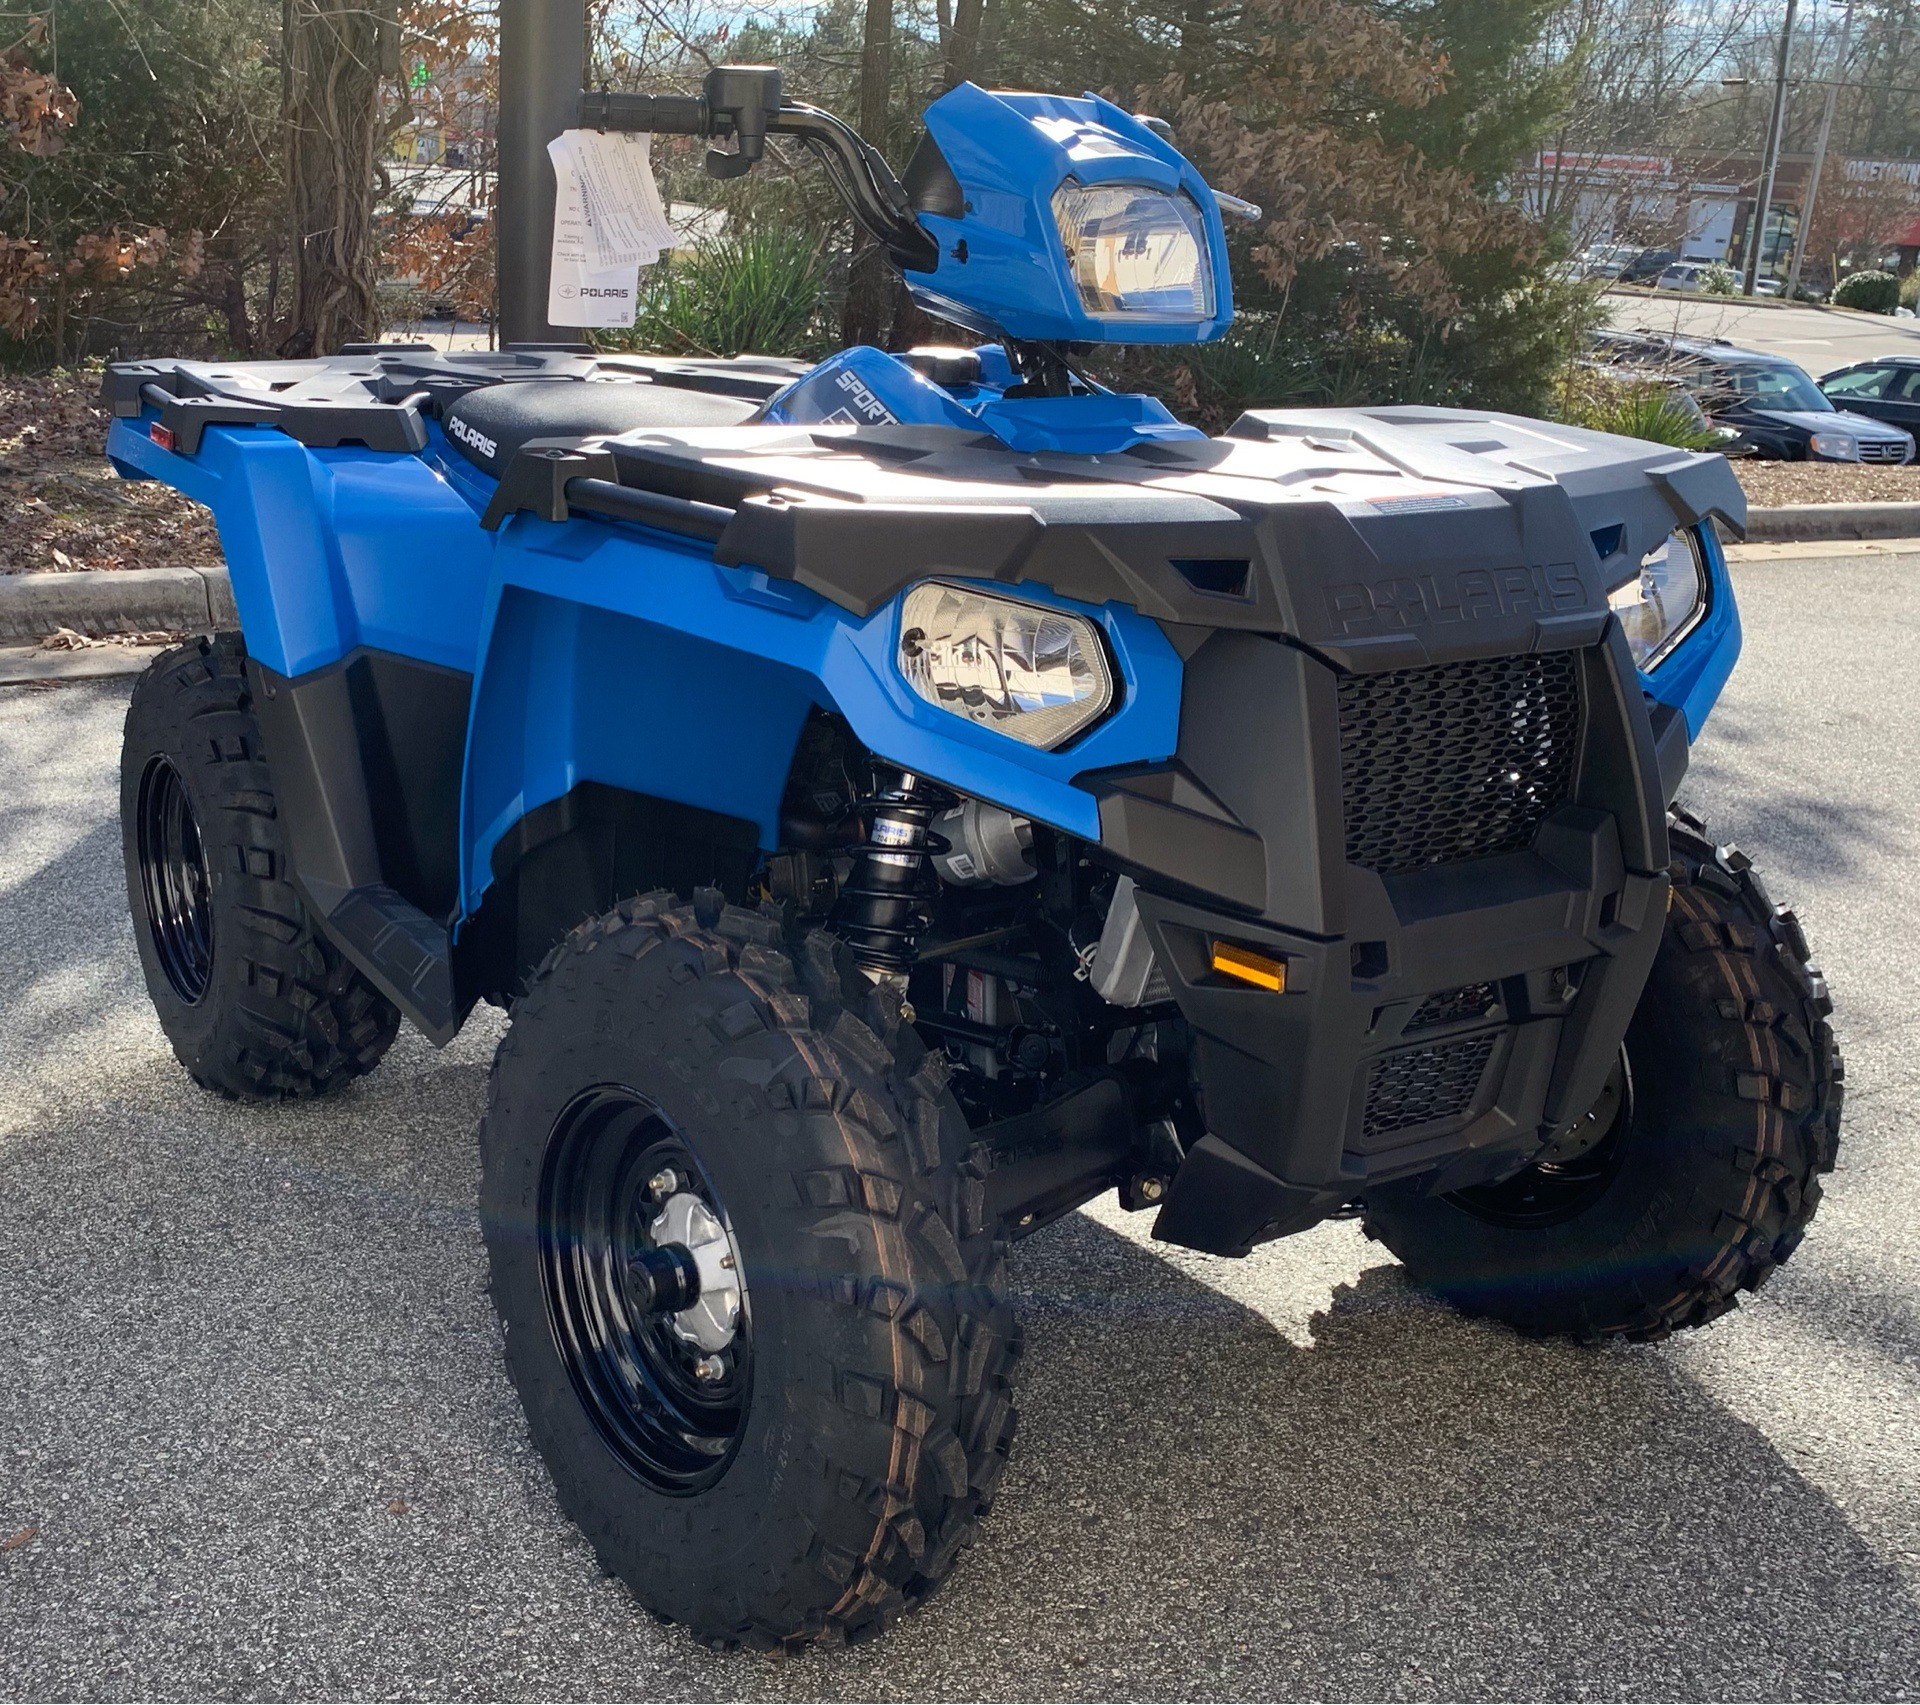 2019 Polaris Sportsman 570 EPS in High Point, North Carolina - Photo 4